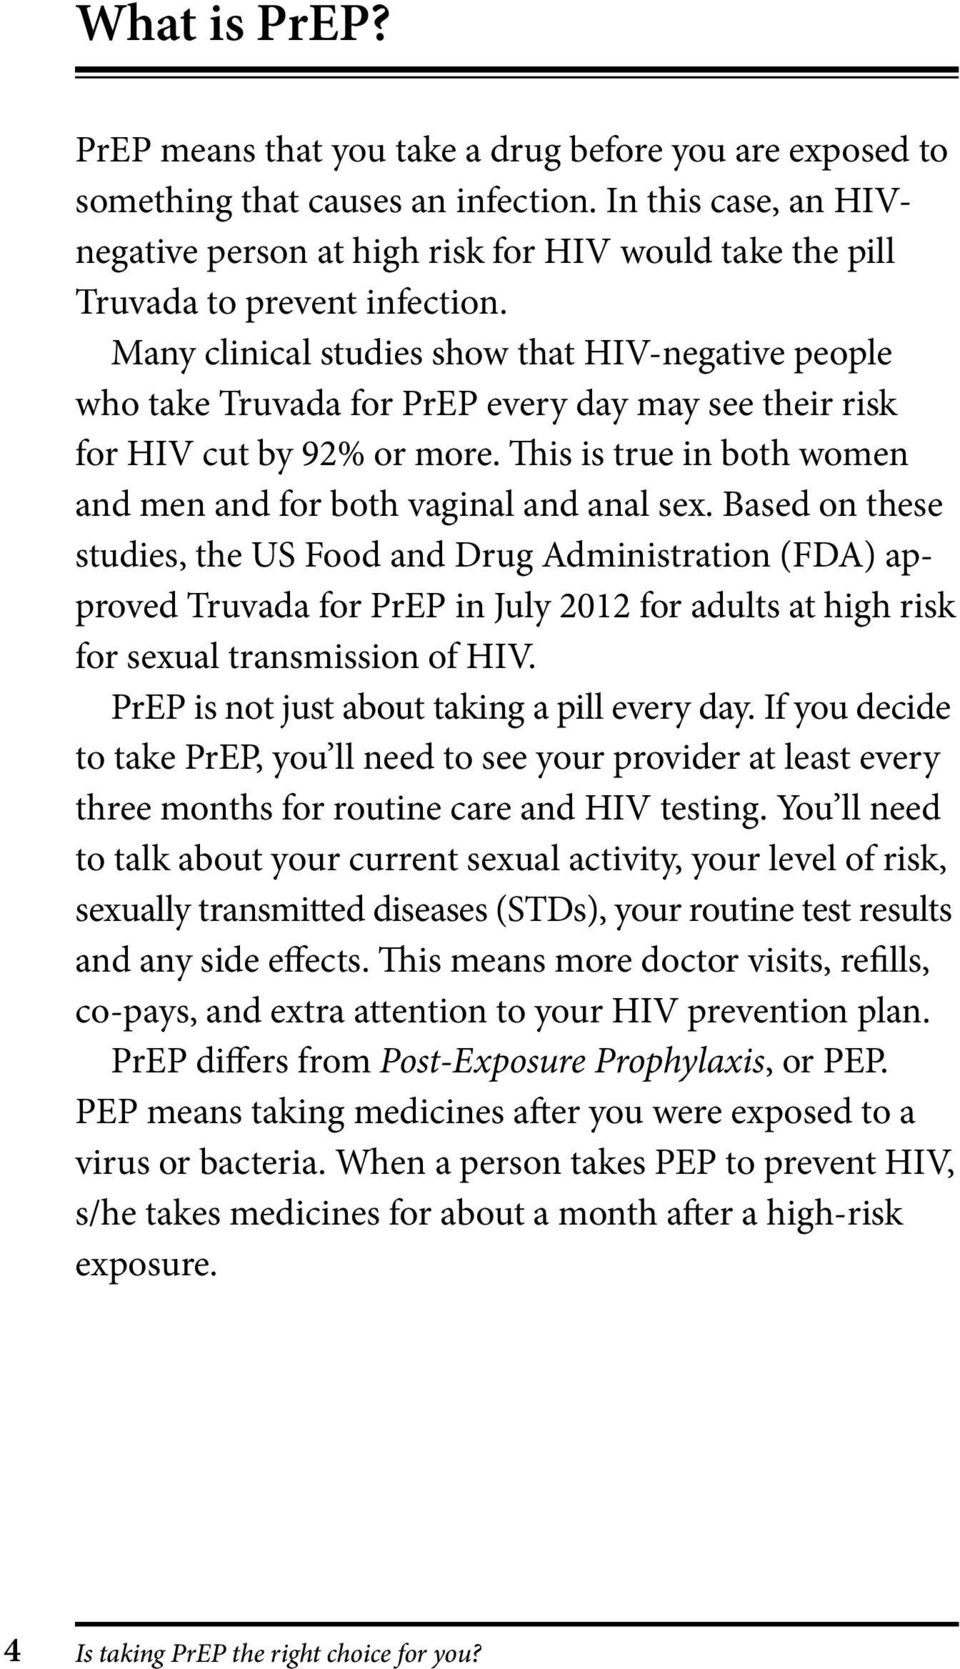 Many clinical studies show that HIV-negative people who take Truvada for PrEP every day may see their risk for HIV cut by 92% or more.